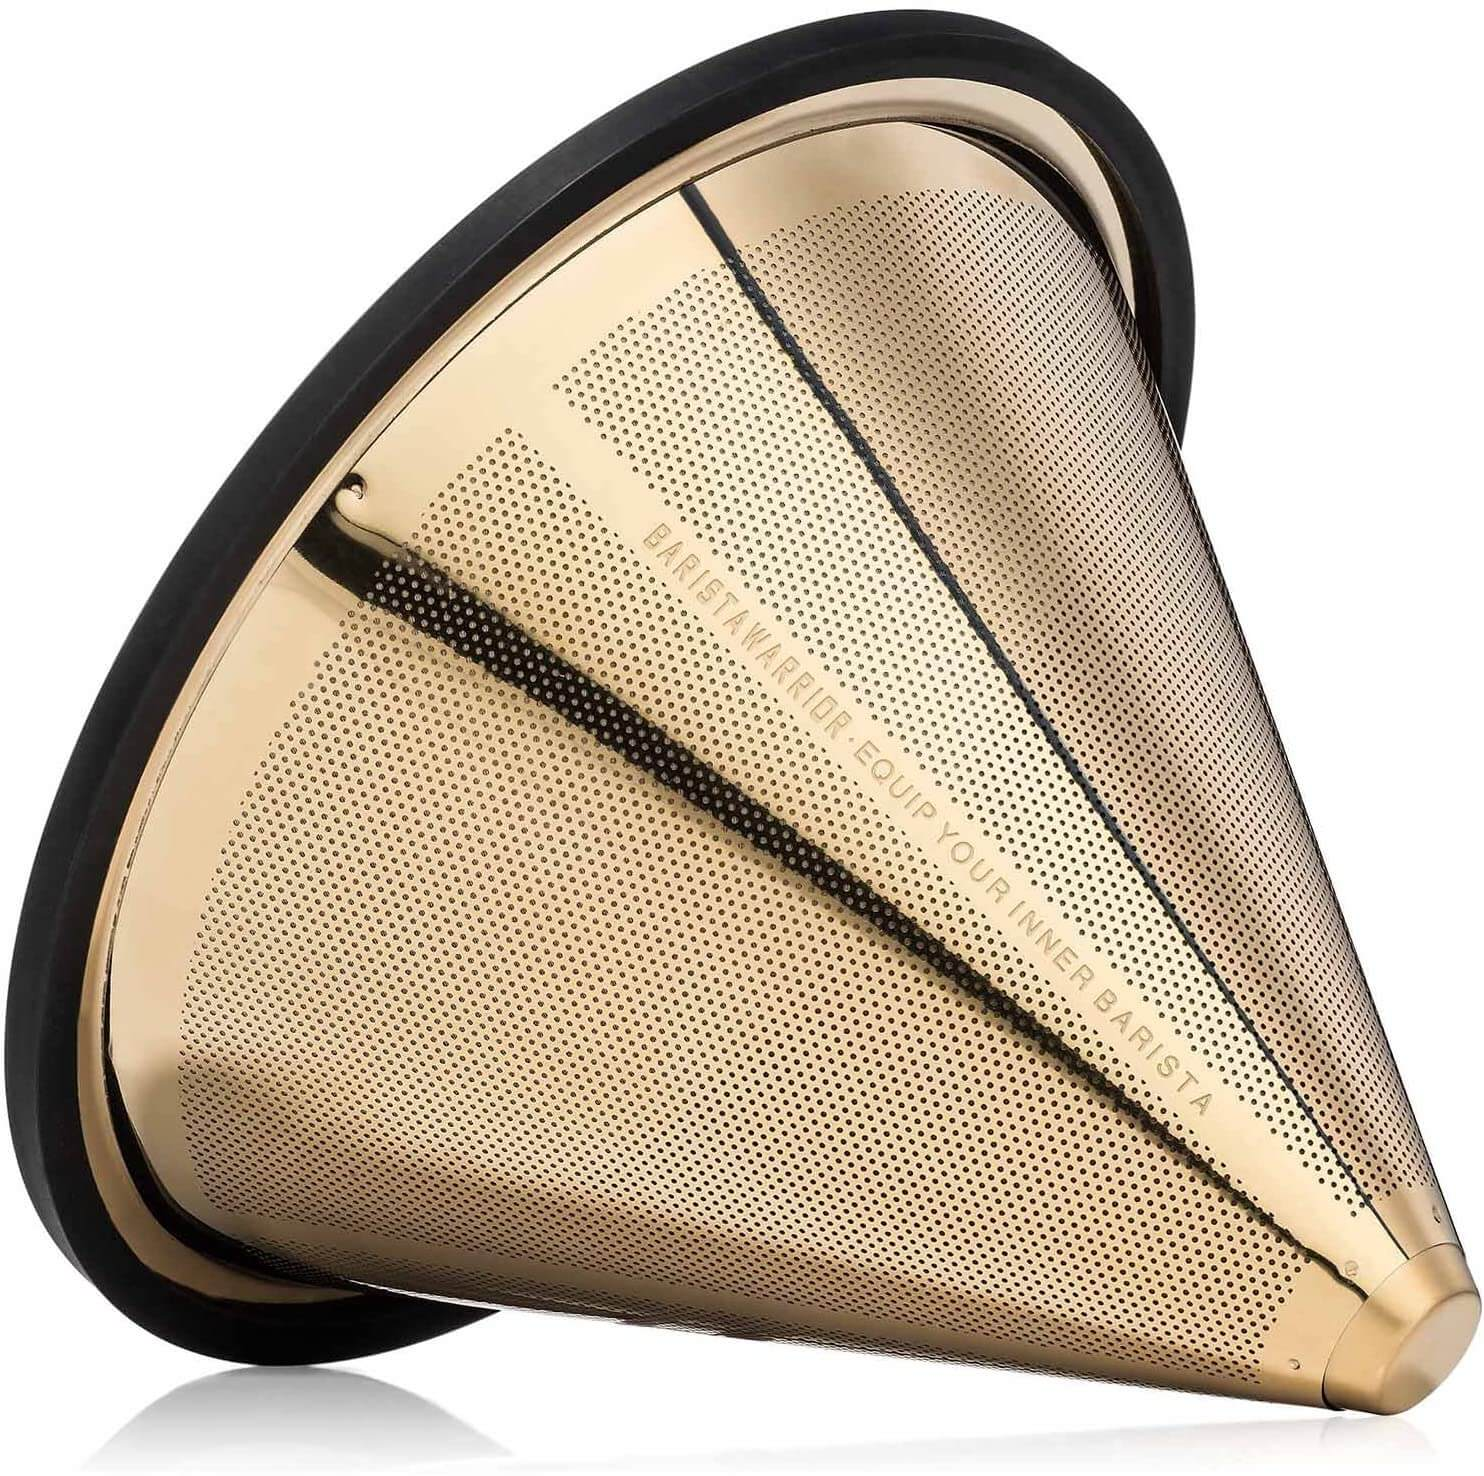 TITANIUM COATED GOLD Pour Over Coffee Filter